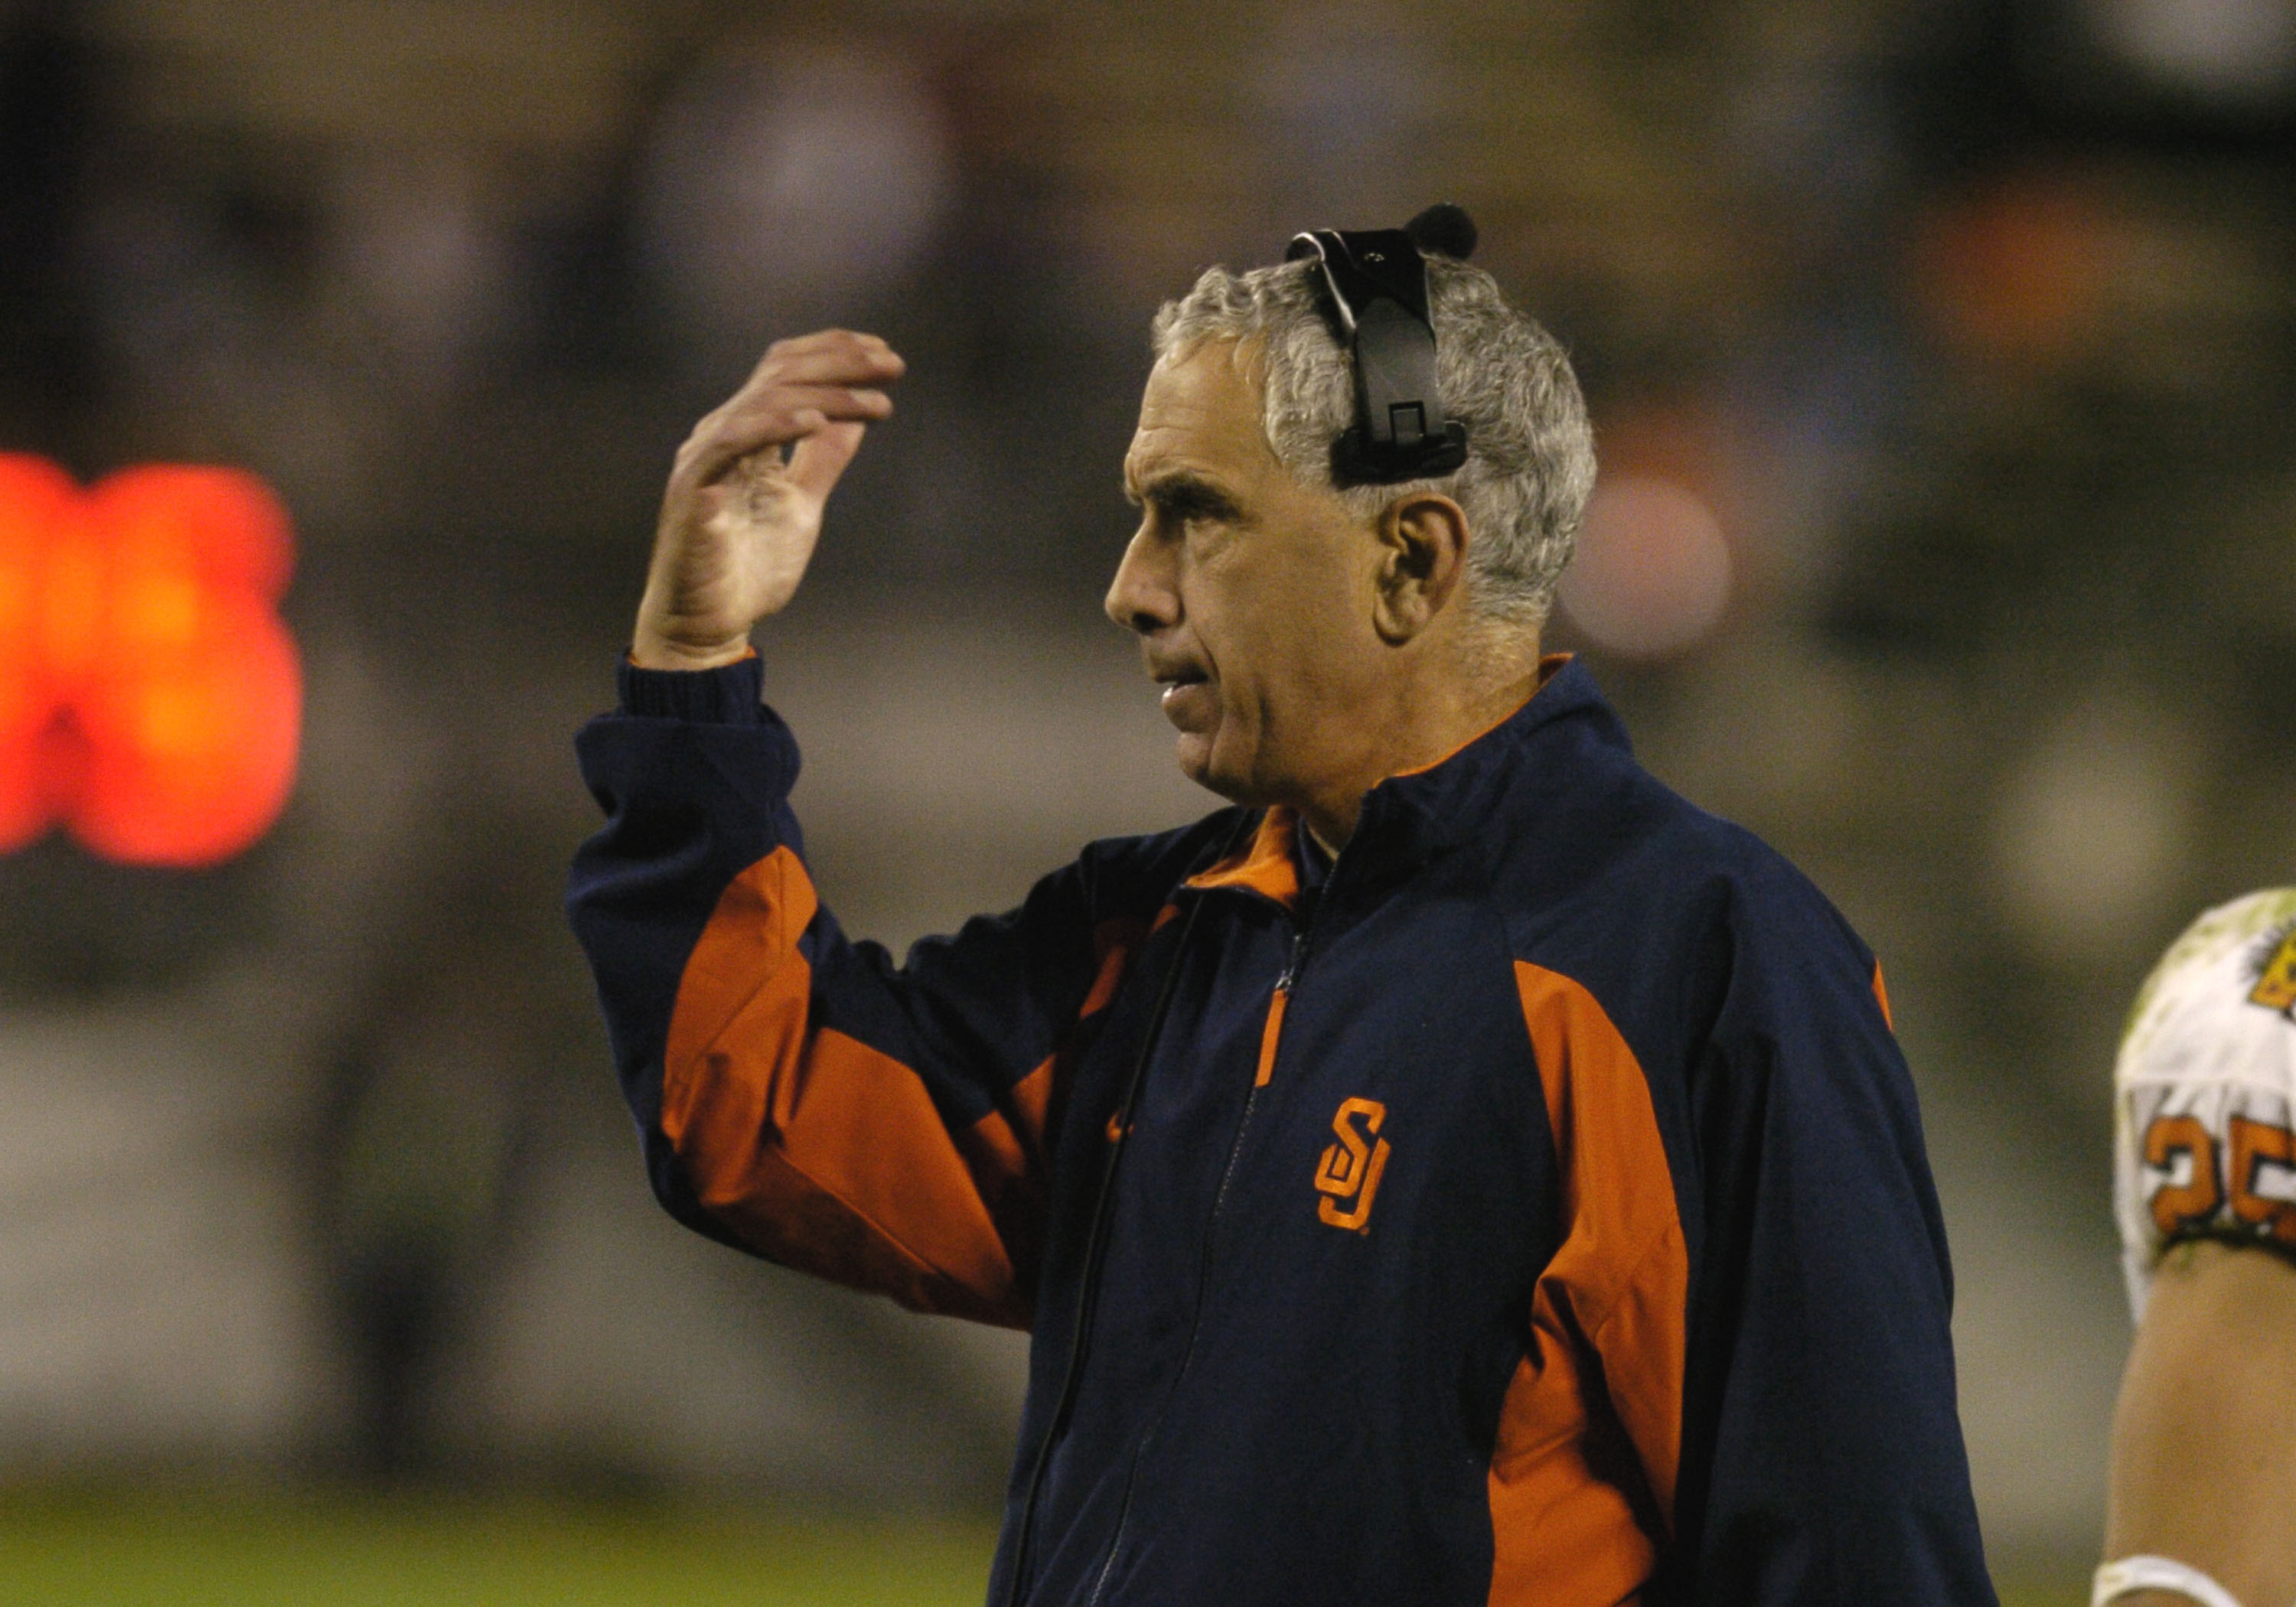 Syracuse coach Paul Pasqualoni directs play  during halftime against  Georgia Tech  in the Champs Sports Bowl at the Florida Citrus Bowl, Orlando, Florida Dec 21, 2004. (Photo by A. Messerschmidt/Getty Images) *** Local Caption ***